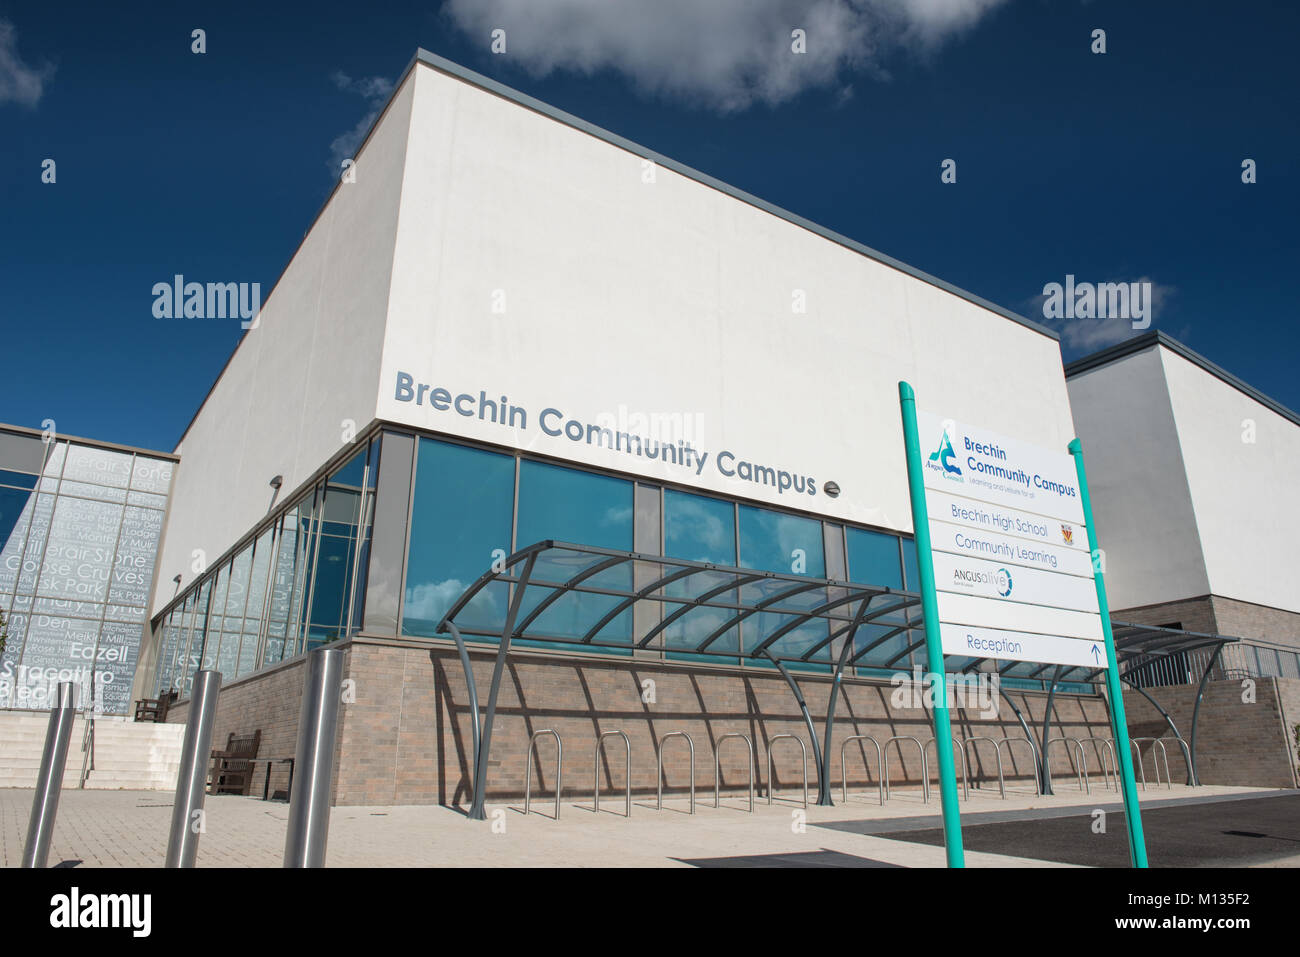 Brechin Community Campus - Stock Image